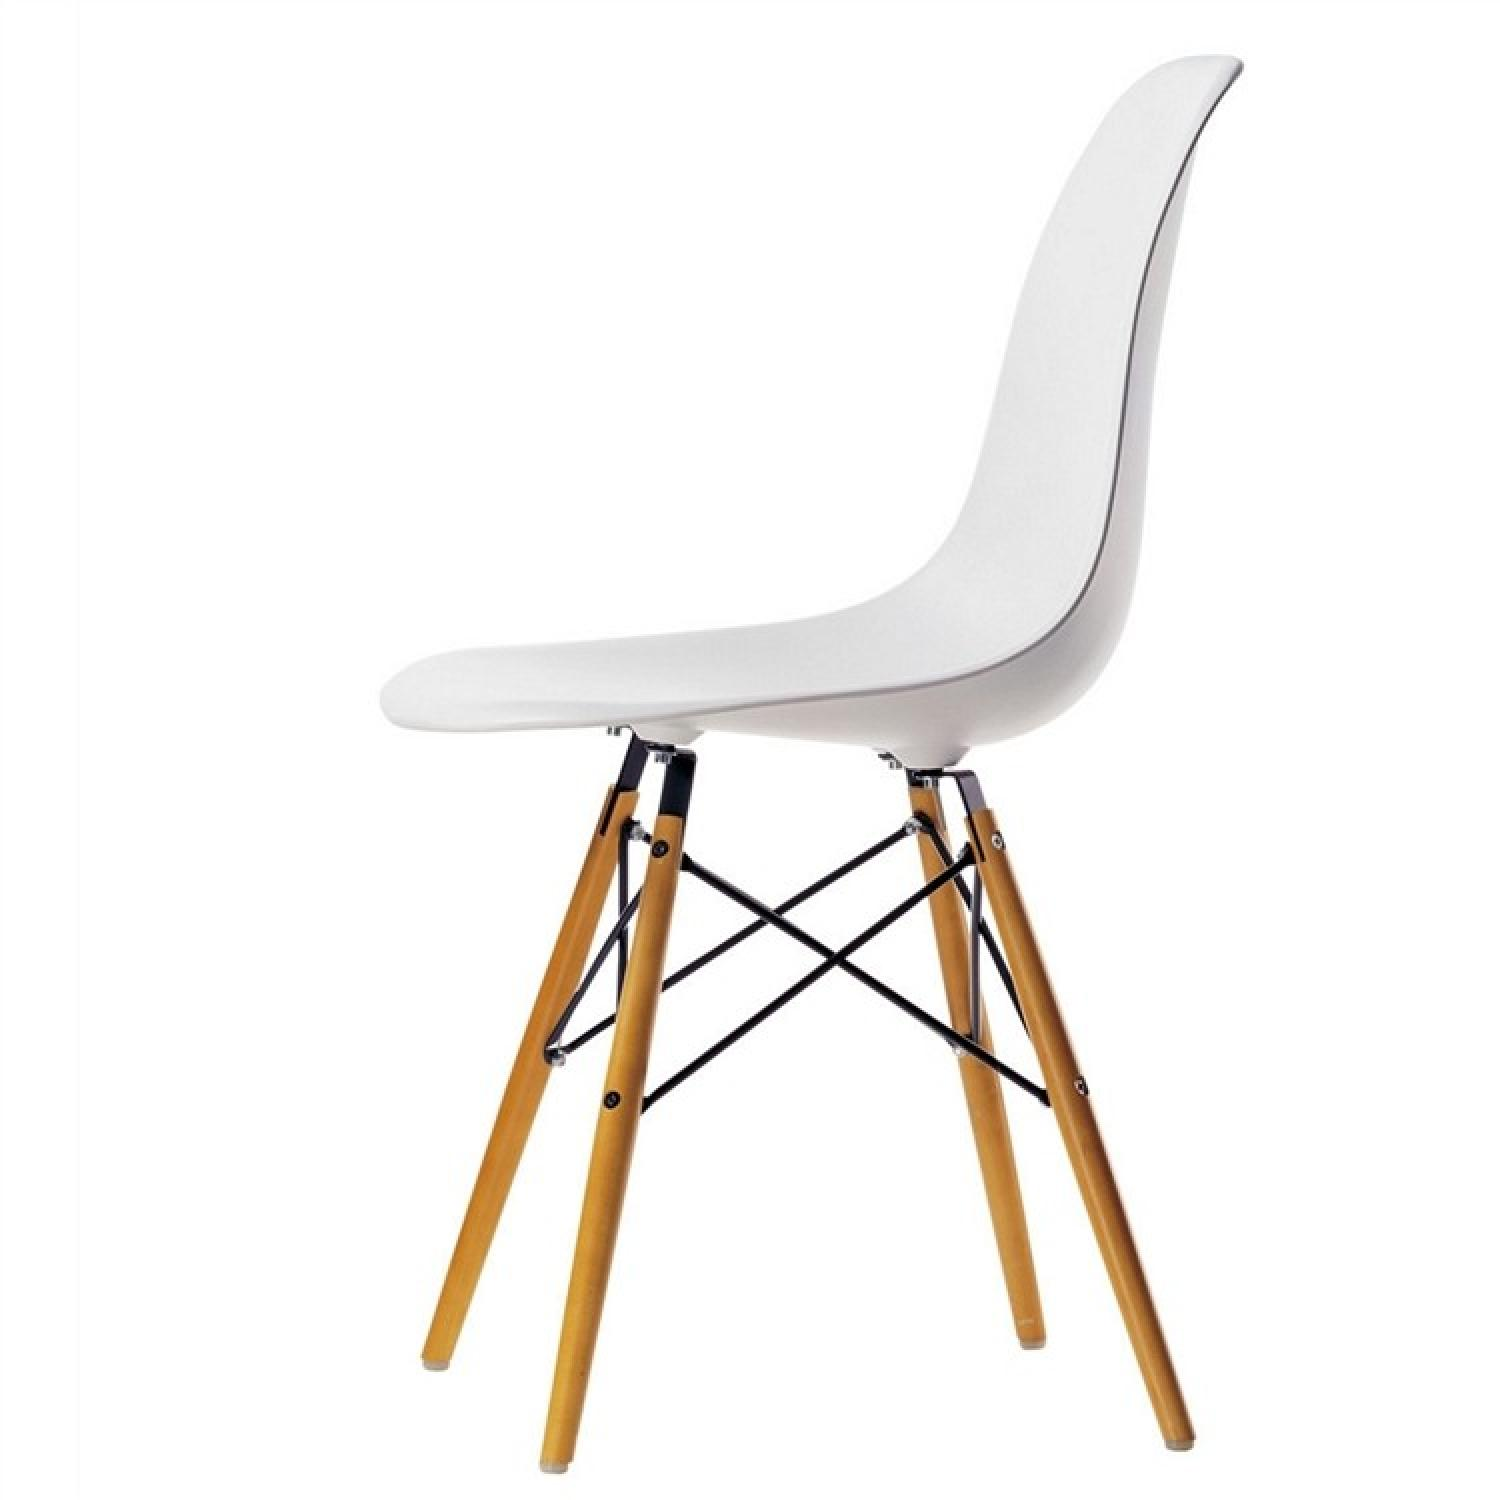 Classic Retro Style White Dining Chairs w/ Wood Legs - image-2